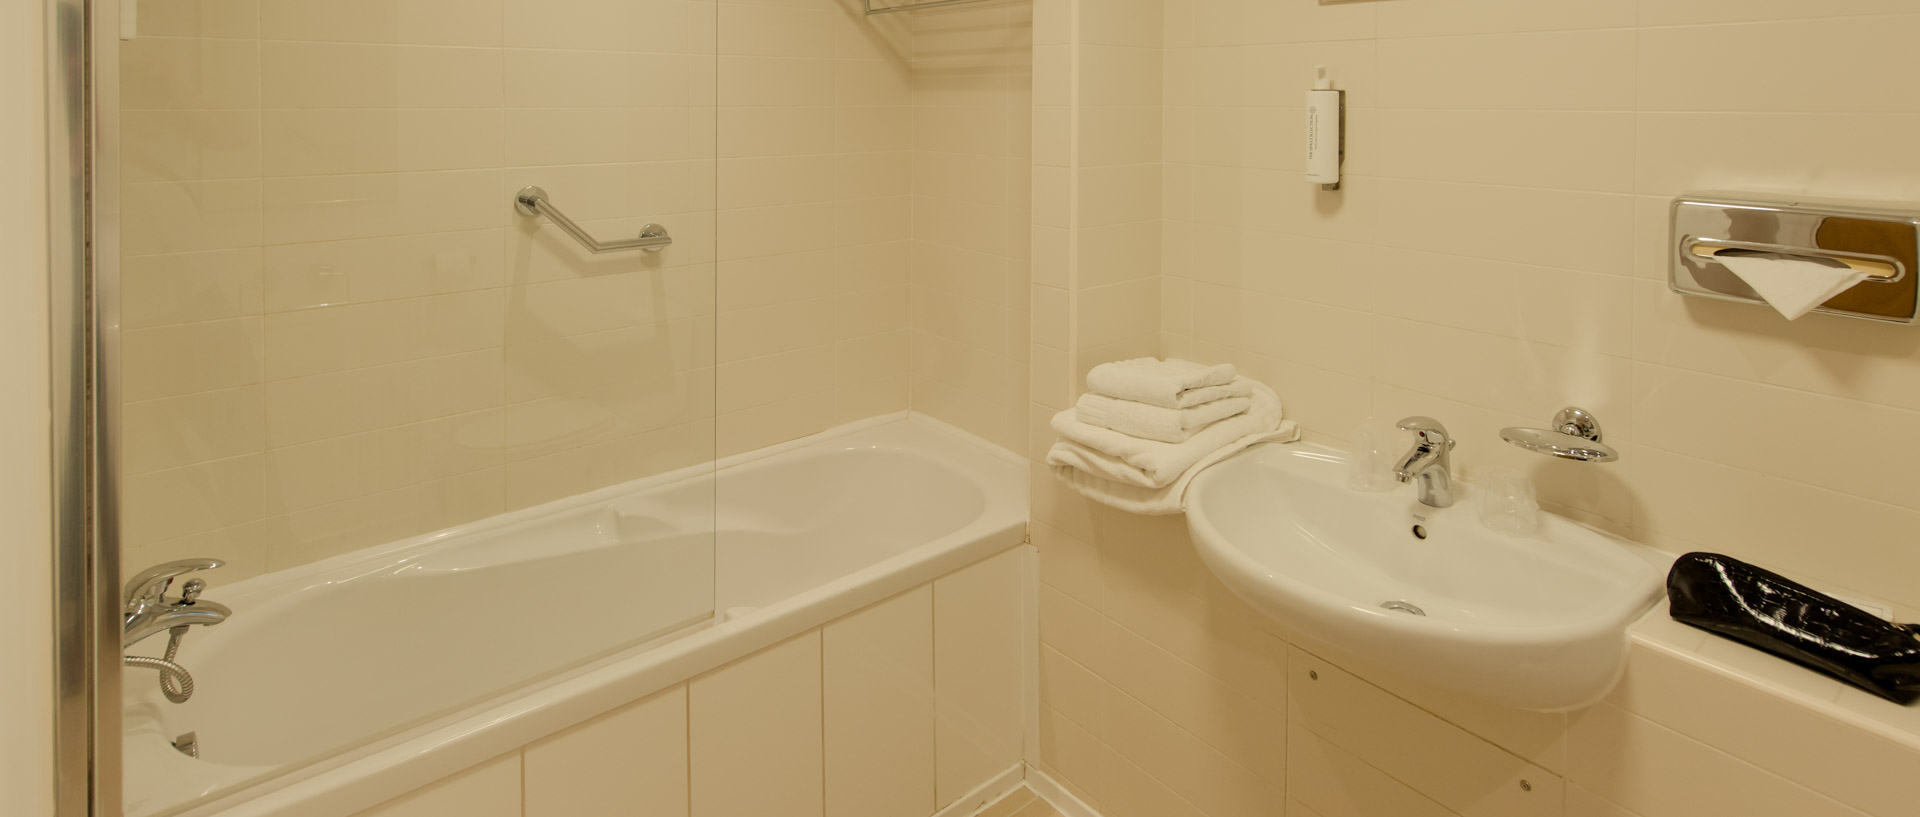 Bright spacious bathroom at PREMIER SUITES Newcastle with shower, bath, sink and toilet